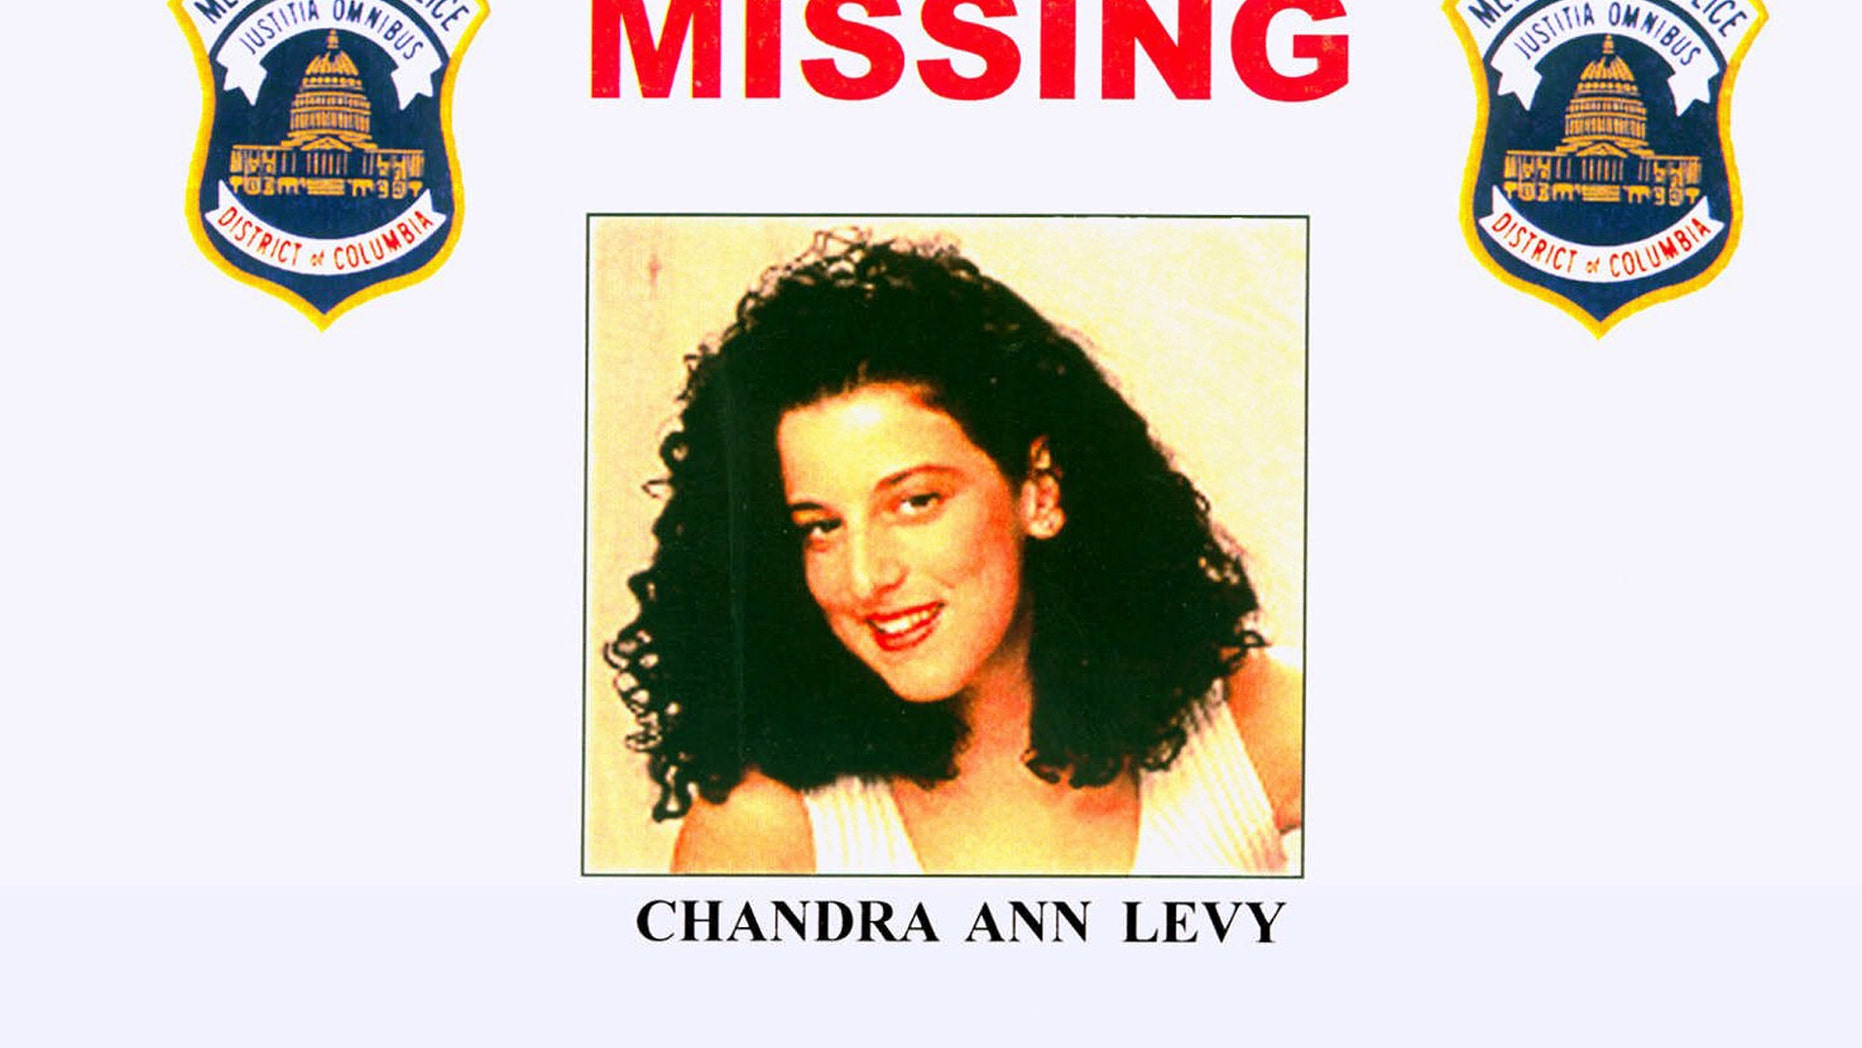 FILE - This 2001 file photo provided by the Washington Police Department shows the missing poster of Chandra Ann Levy, of Modesto, Calif. A judge promised more openness Tuesday after months of closed post-trial proceedings in the case of murdered Washington intern Chandra Levy, disclosing for the first time the reason a key prosecution witness could be discredited (AP Photo/Washington Police Department, File)